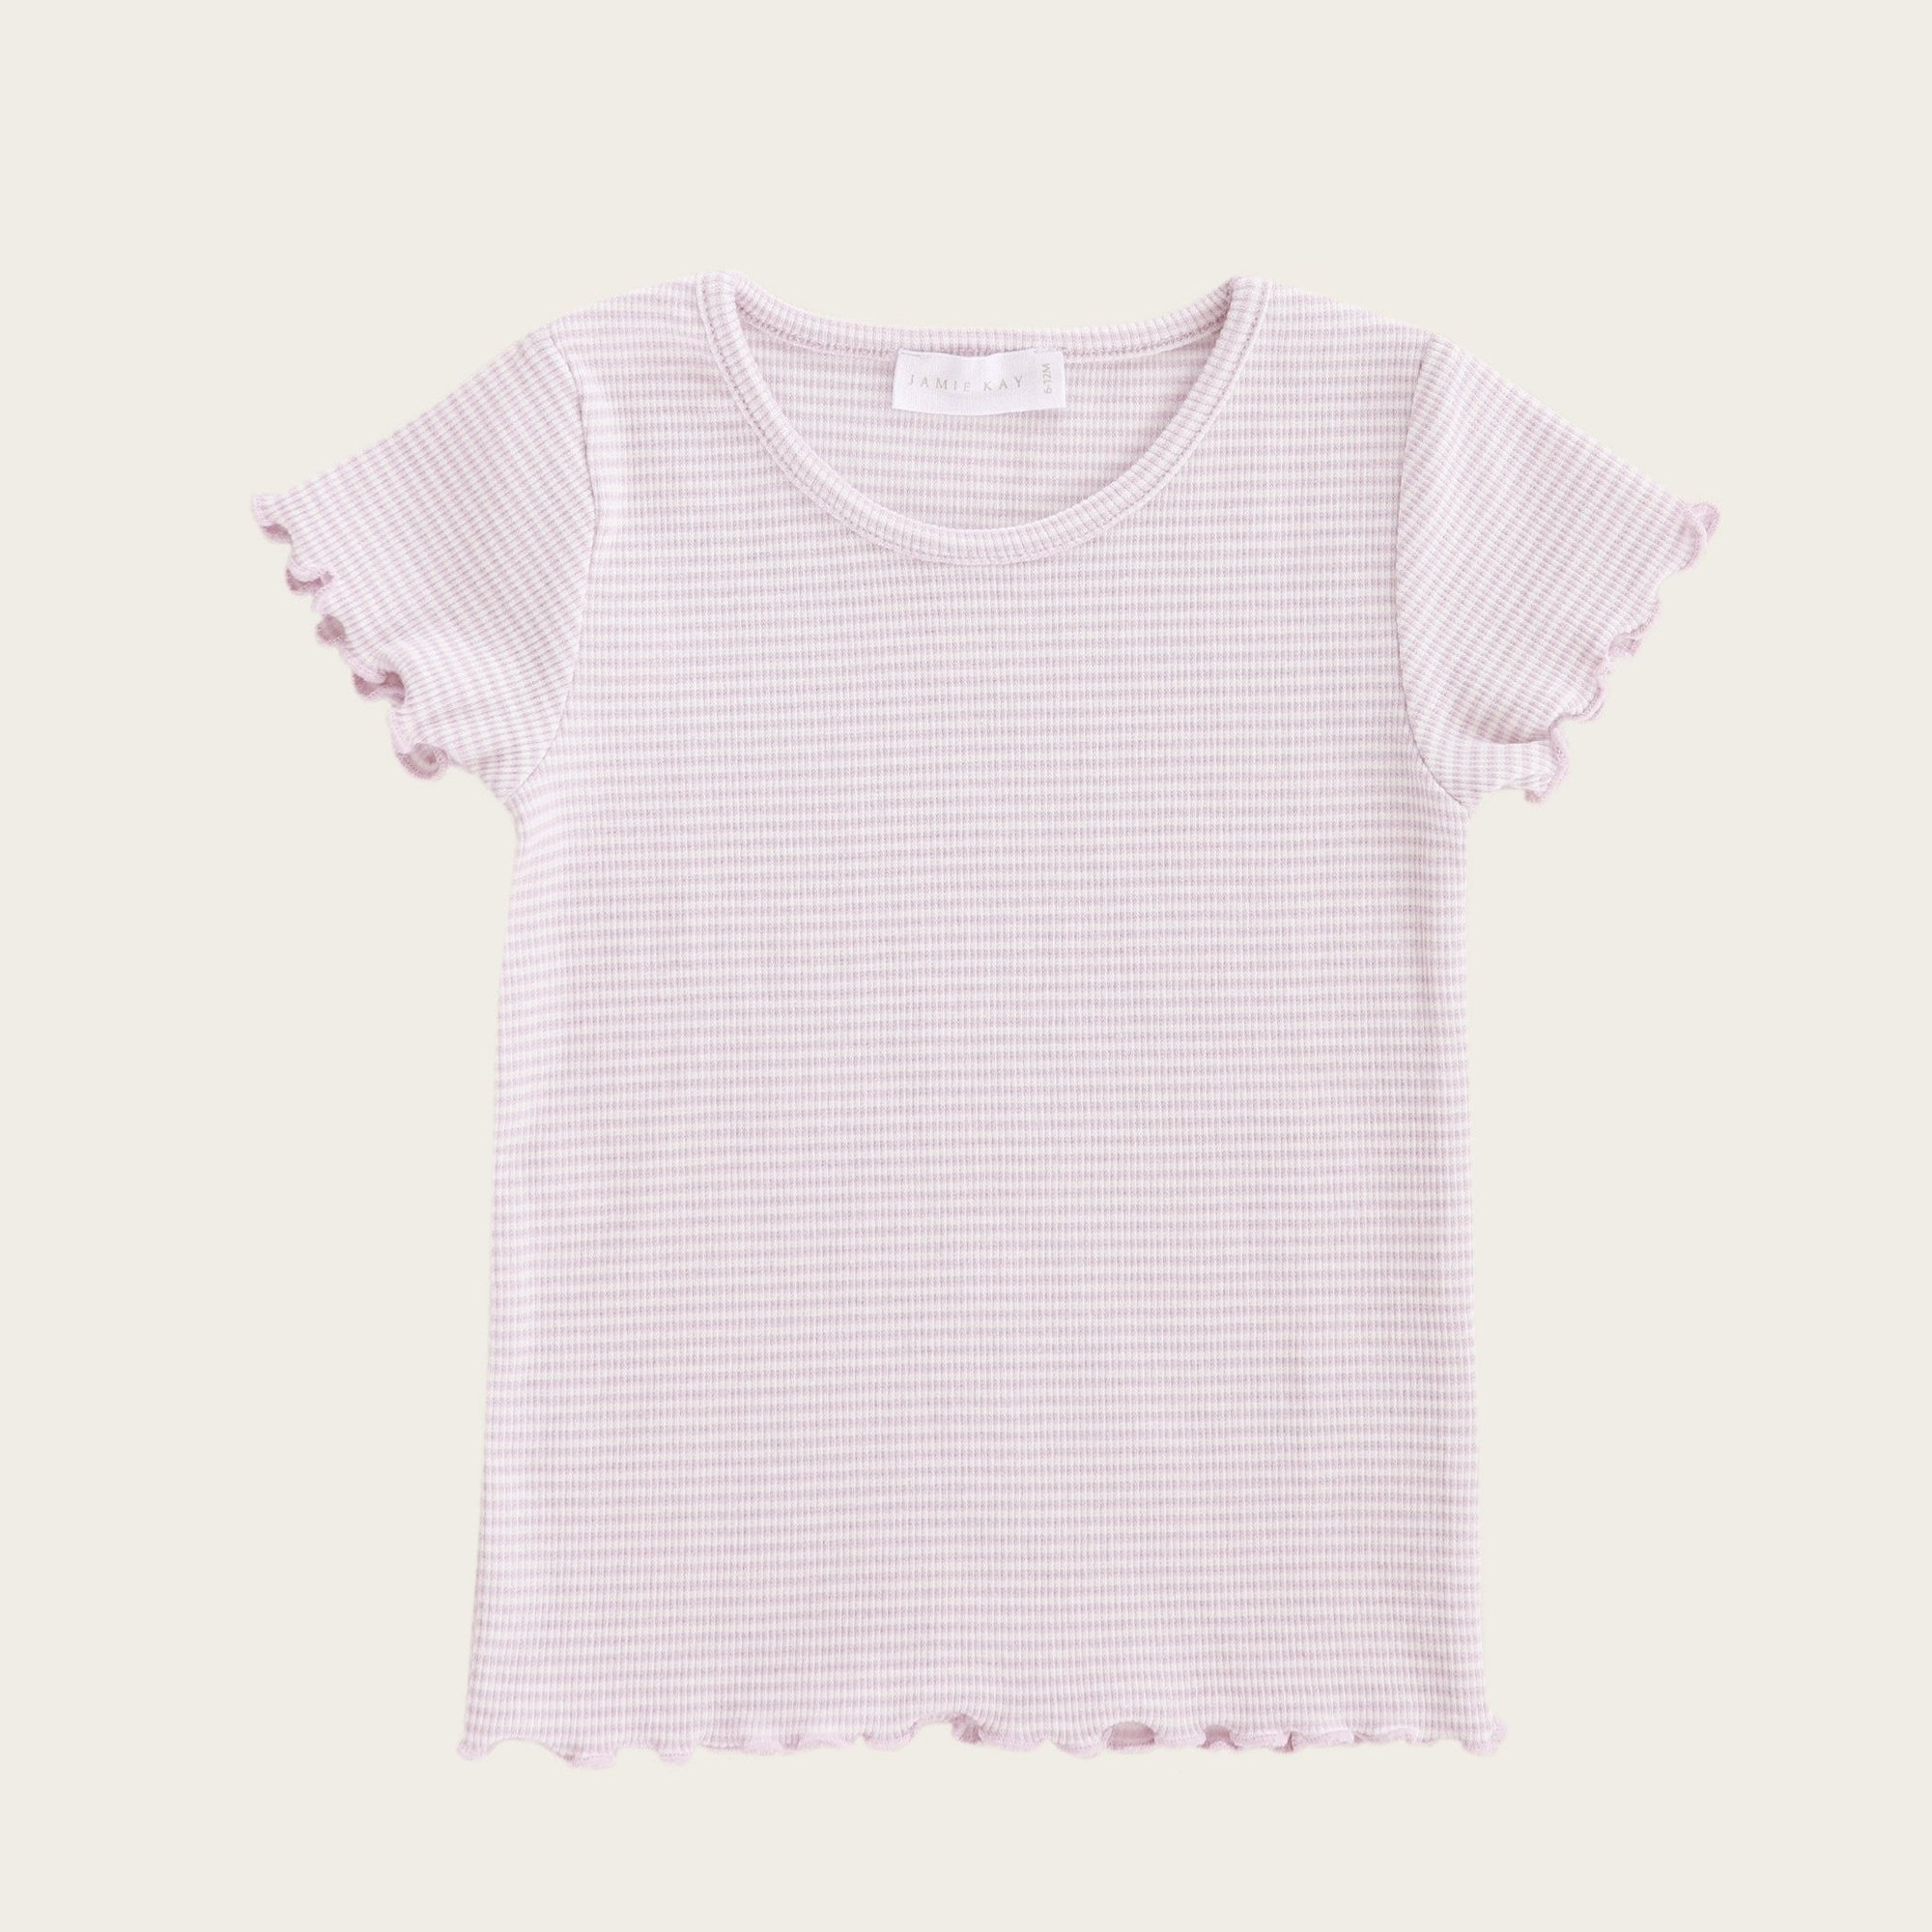 Lily Tee (Lavender Stripe)